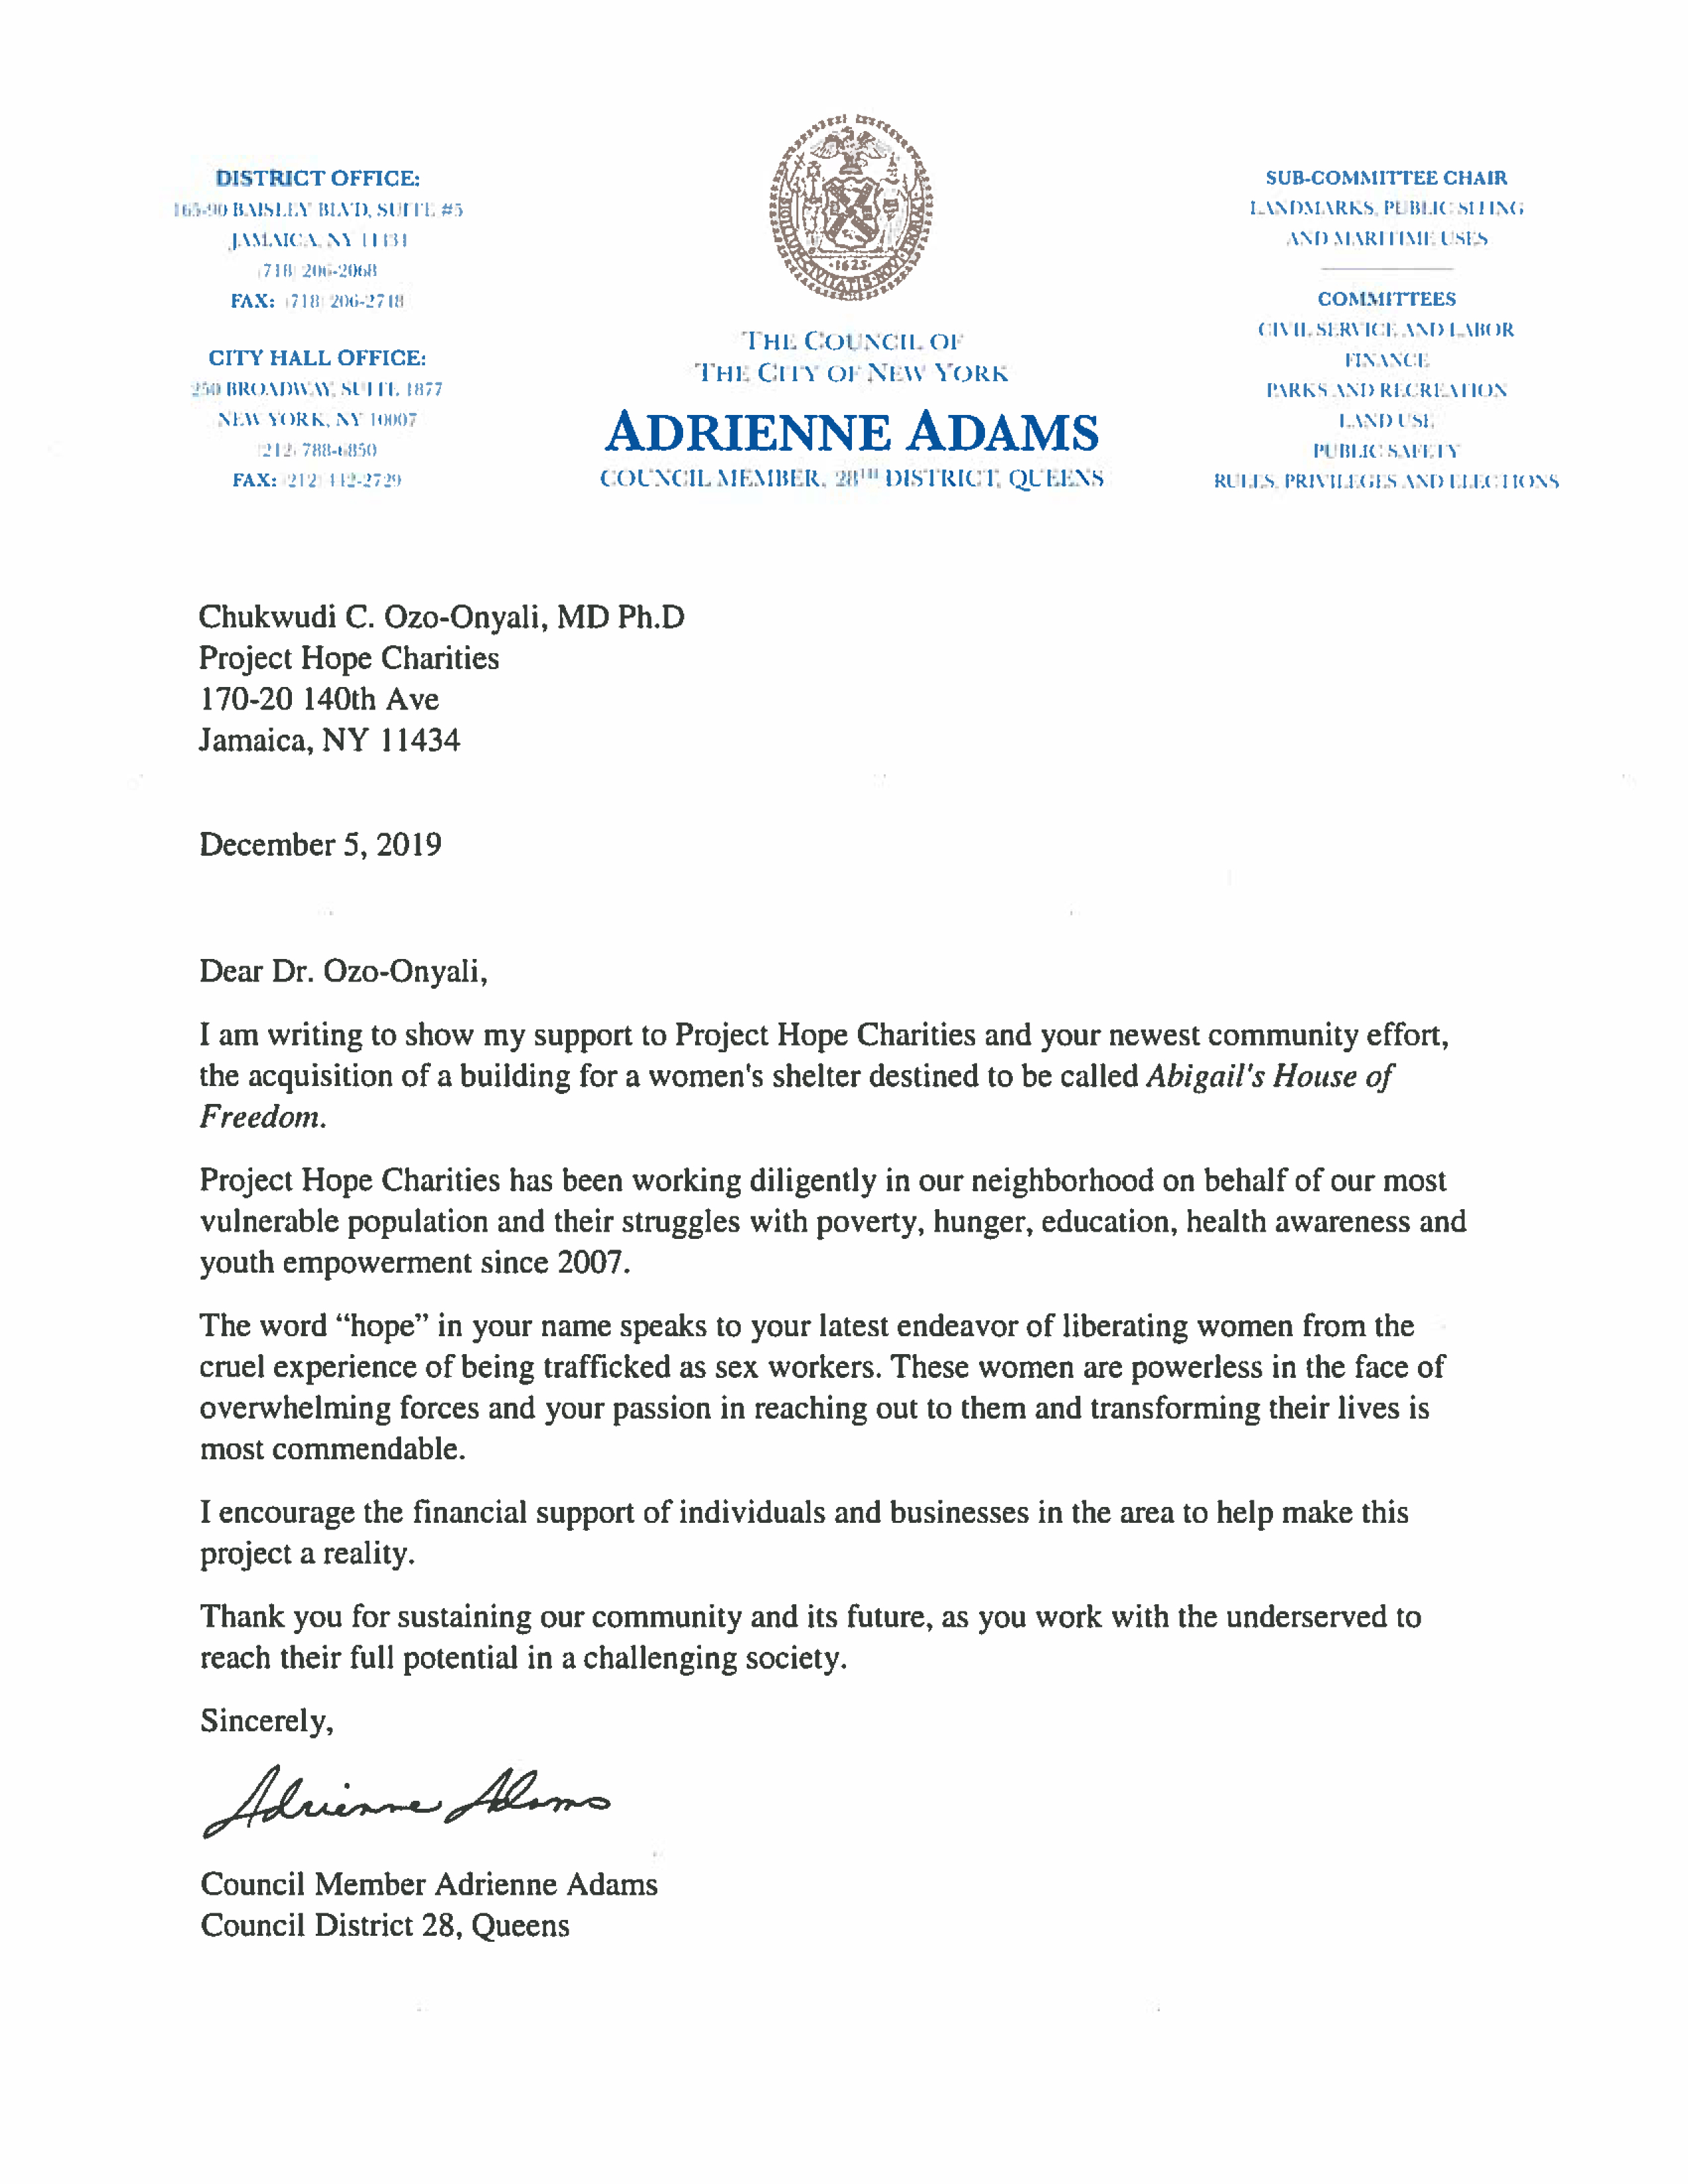 Project Hope_Letter of Support Adams